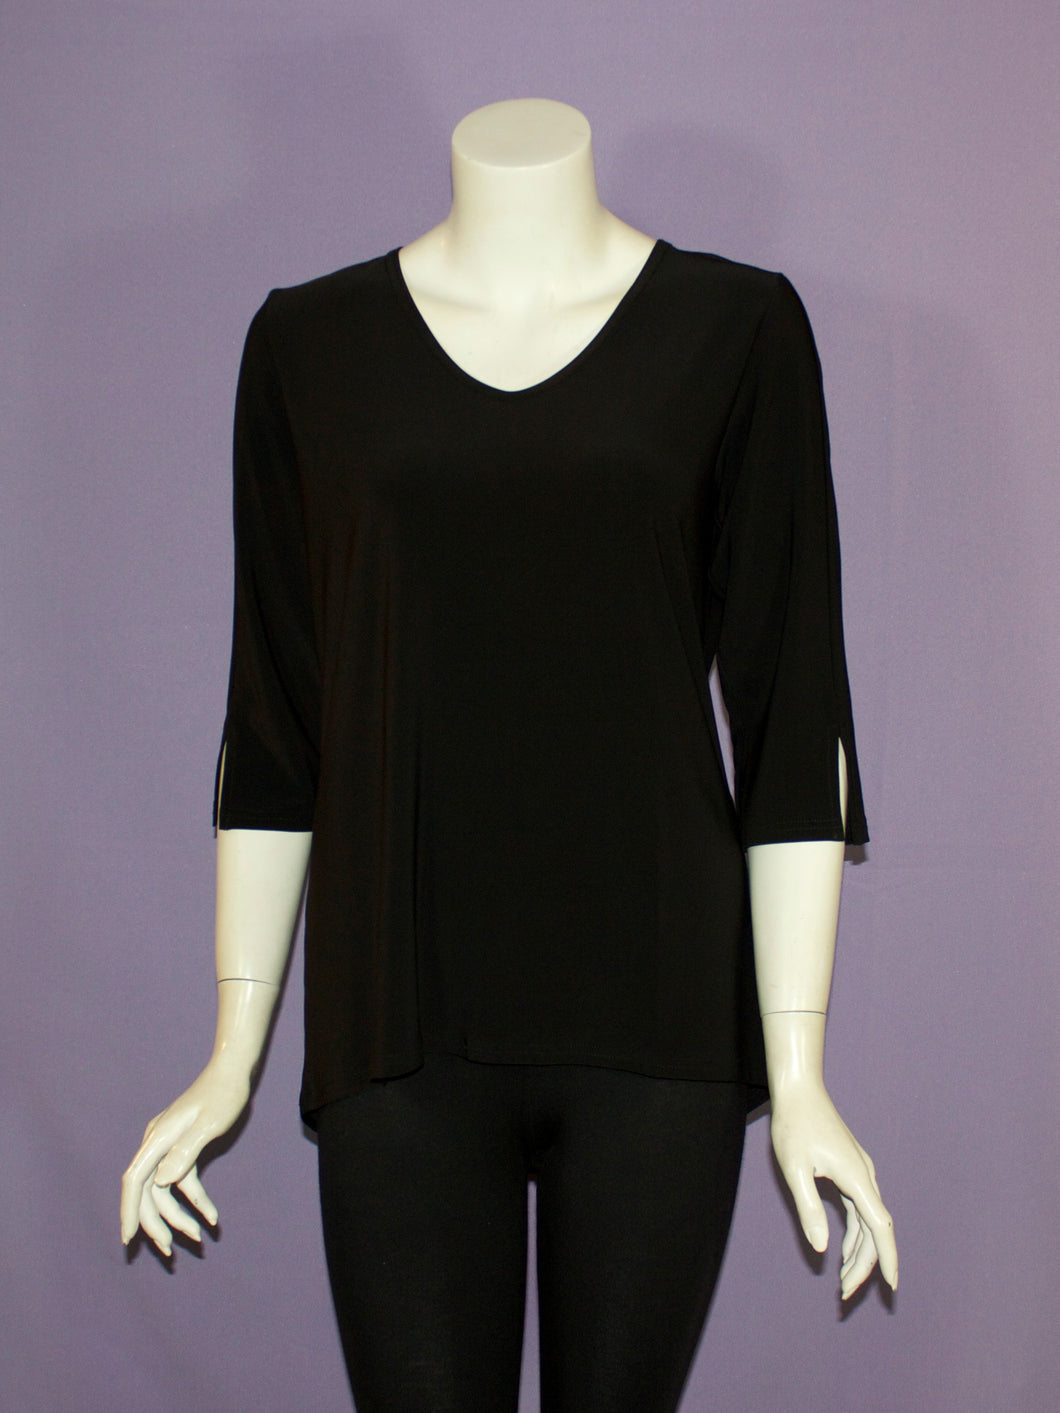 Basic Poly 3/4 Sleeve V-Neck Tunic - 4 colors